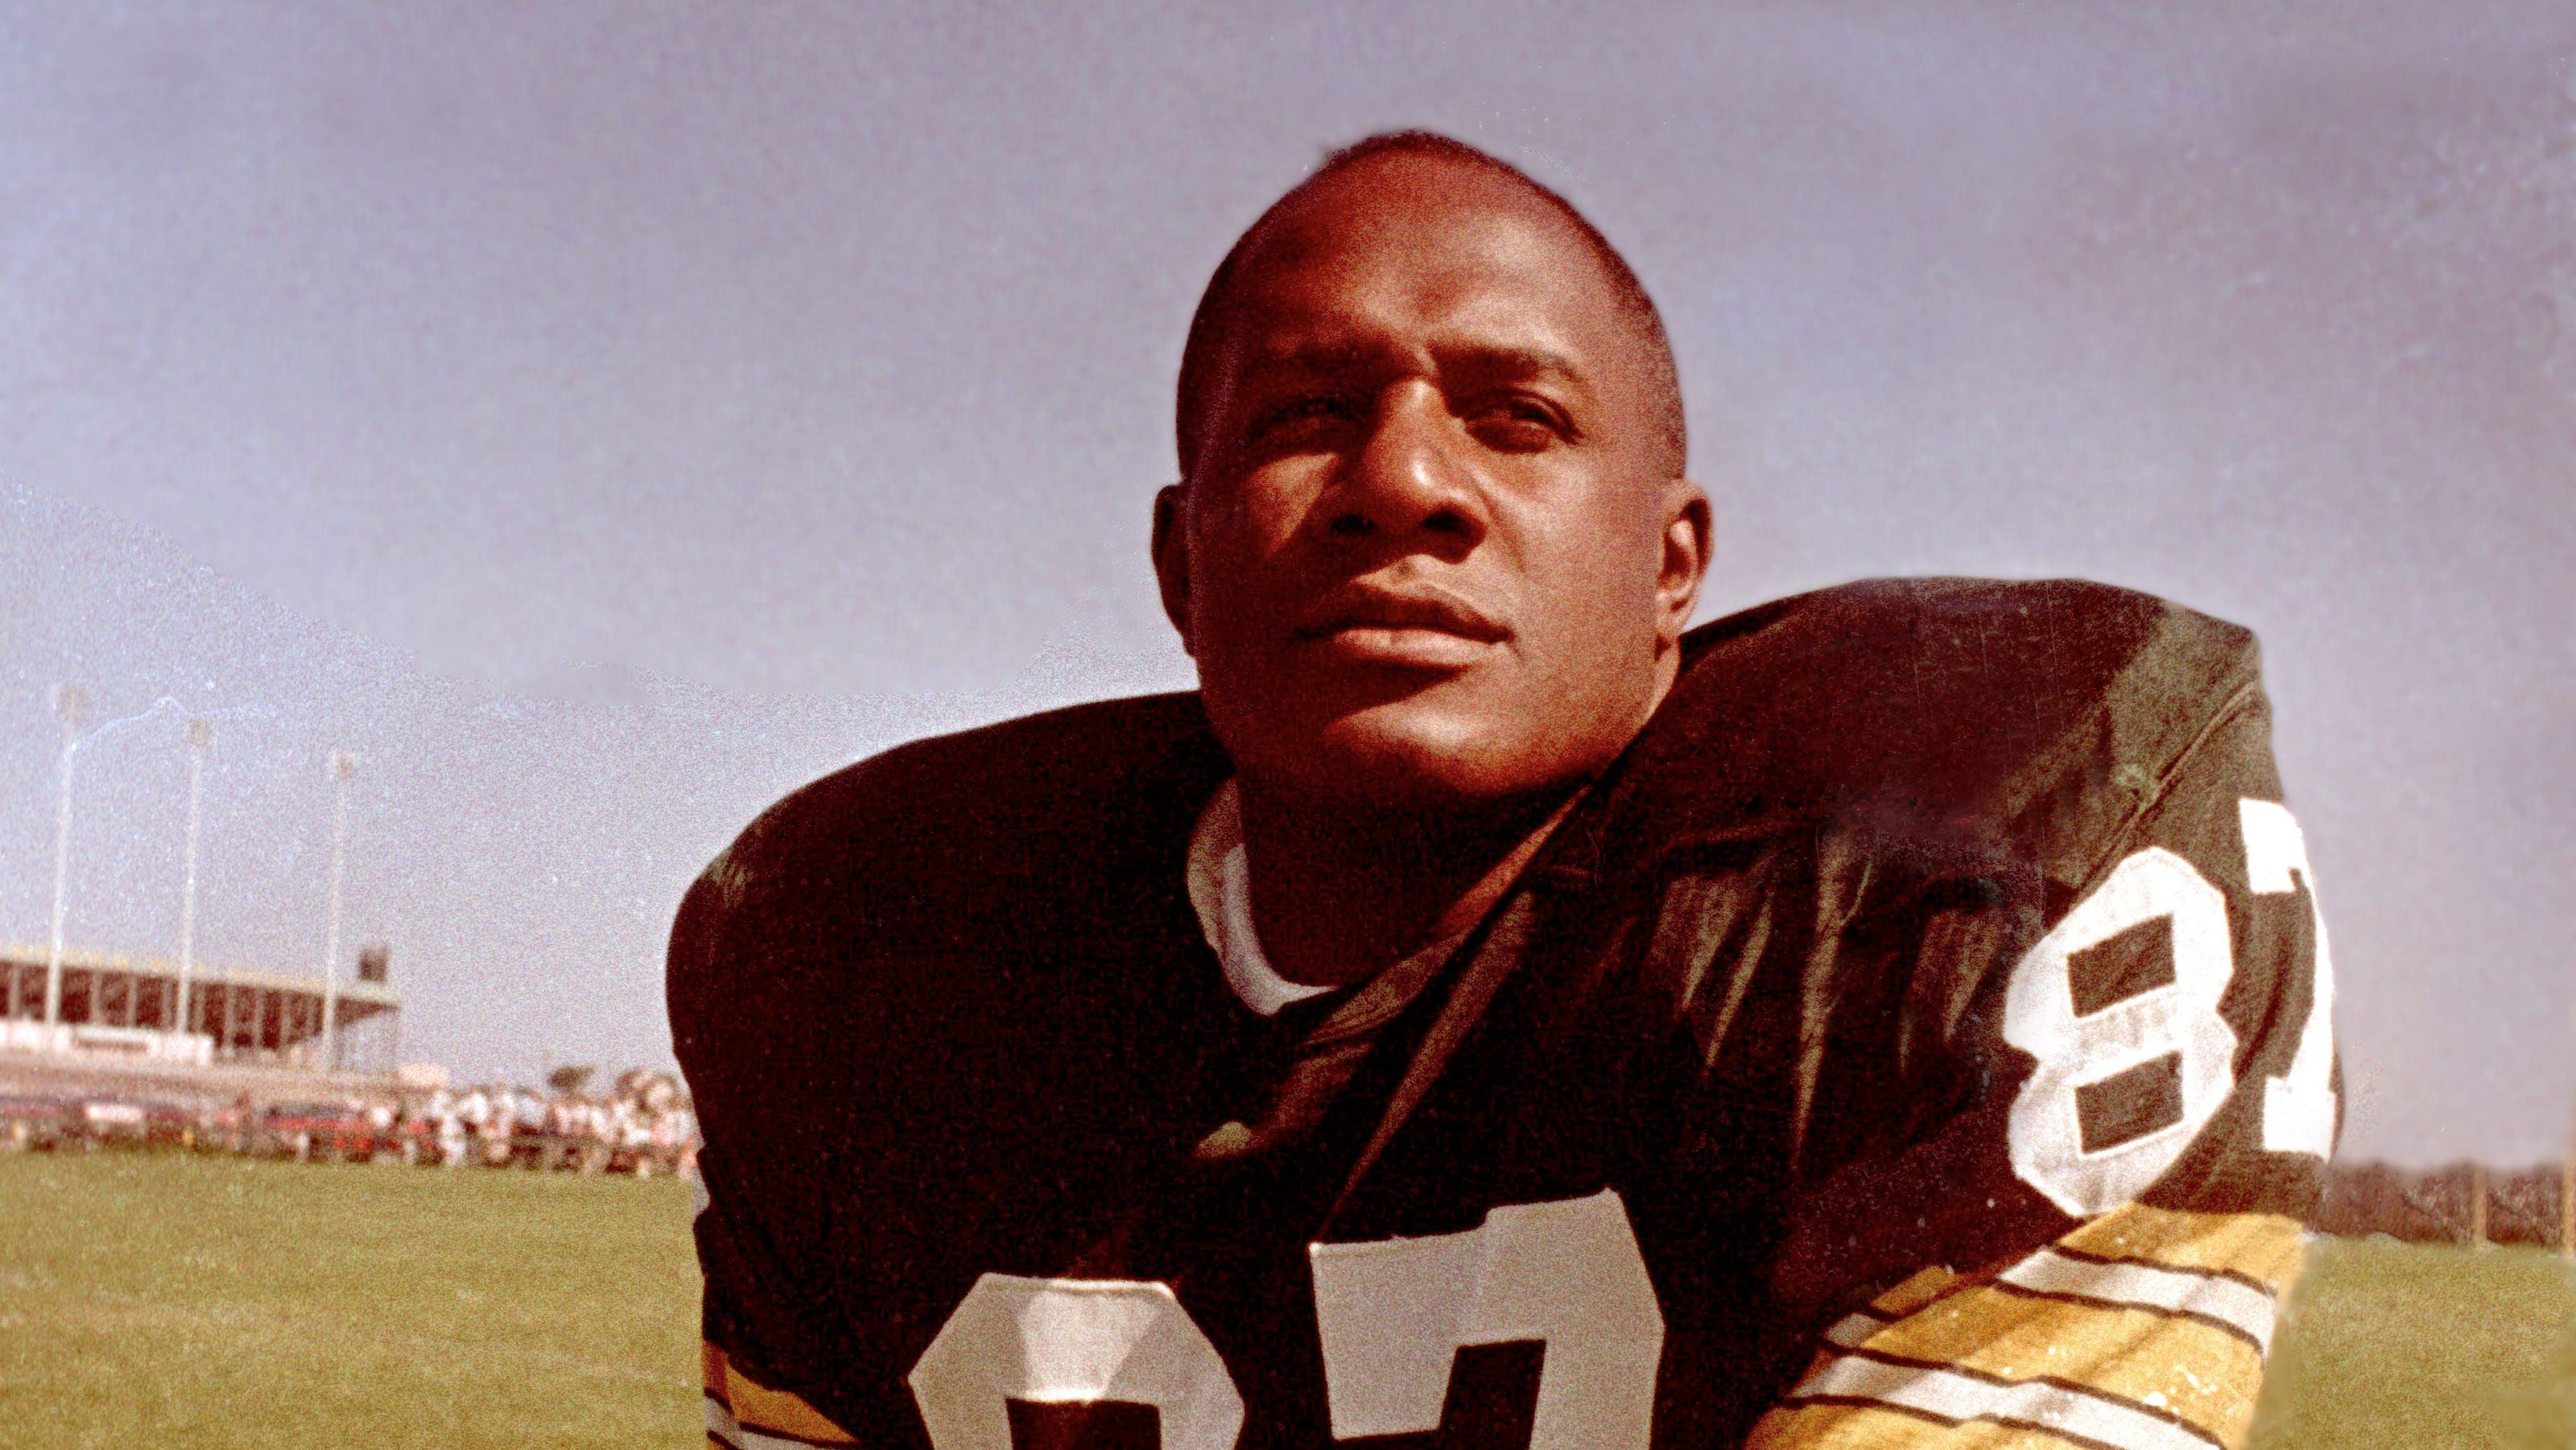 Hall Of Fame Green Bay Packers Defensive End Willie Davis Dies At 85 In 2020 Green Bay Packers Green Bay Packers